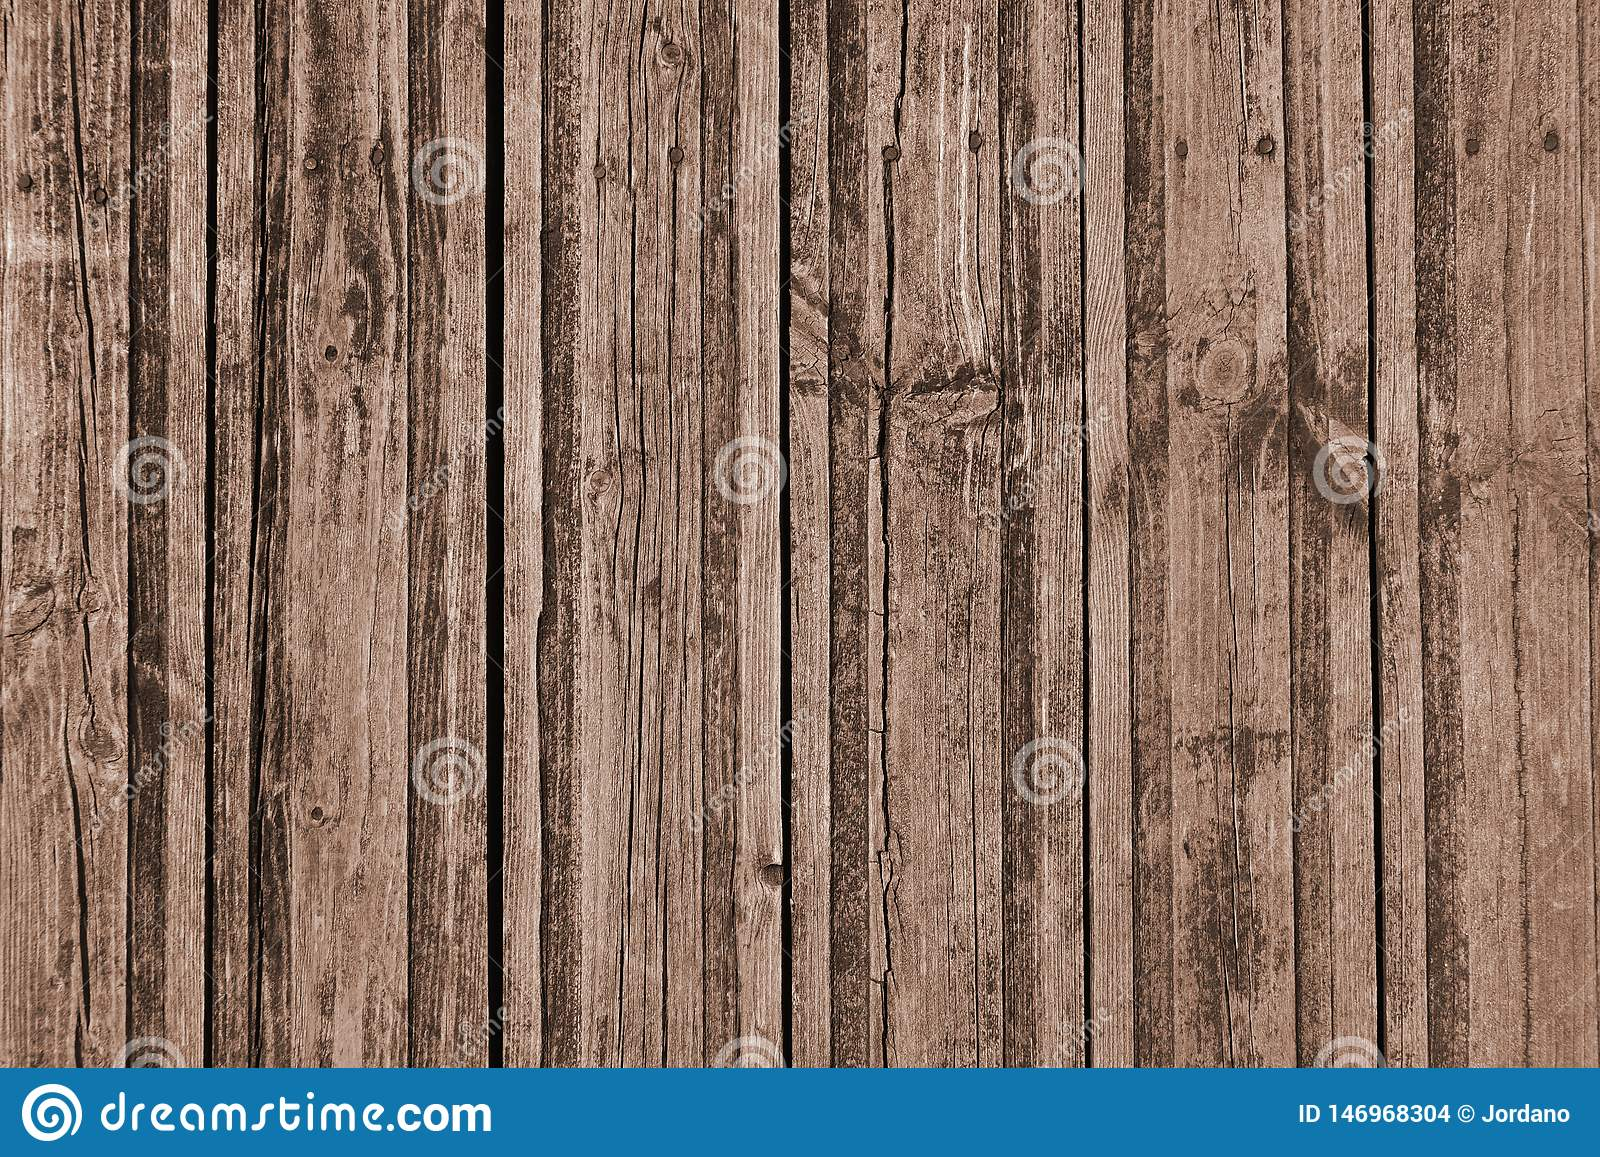 High resolution Wood plank as texture background